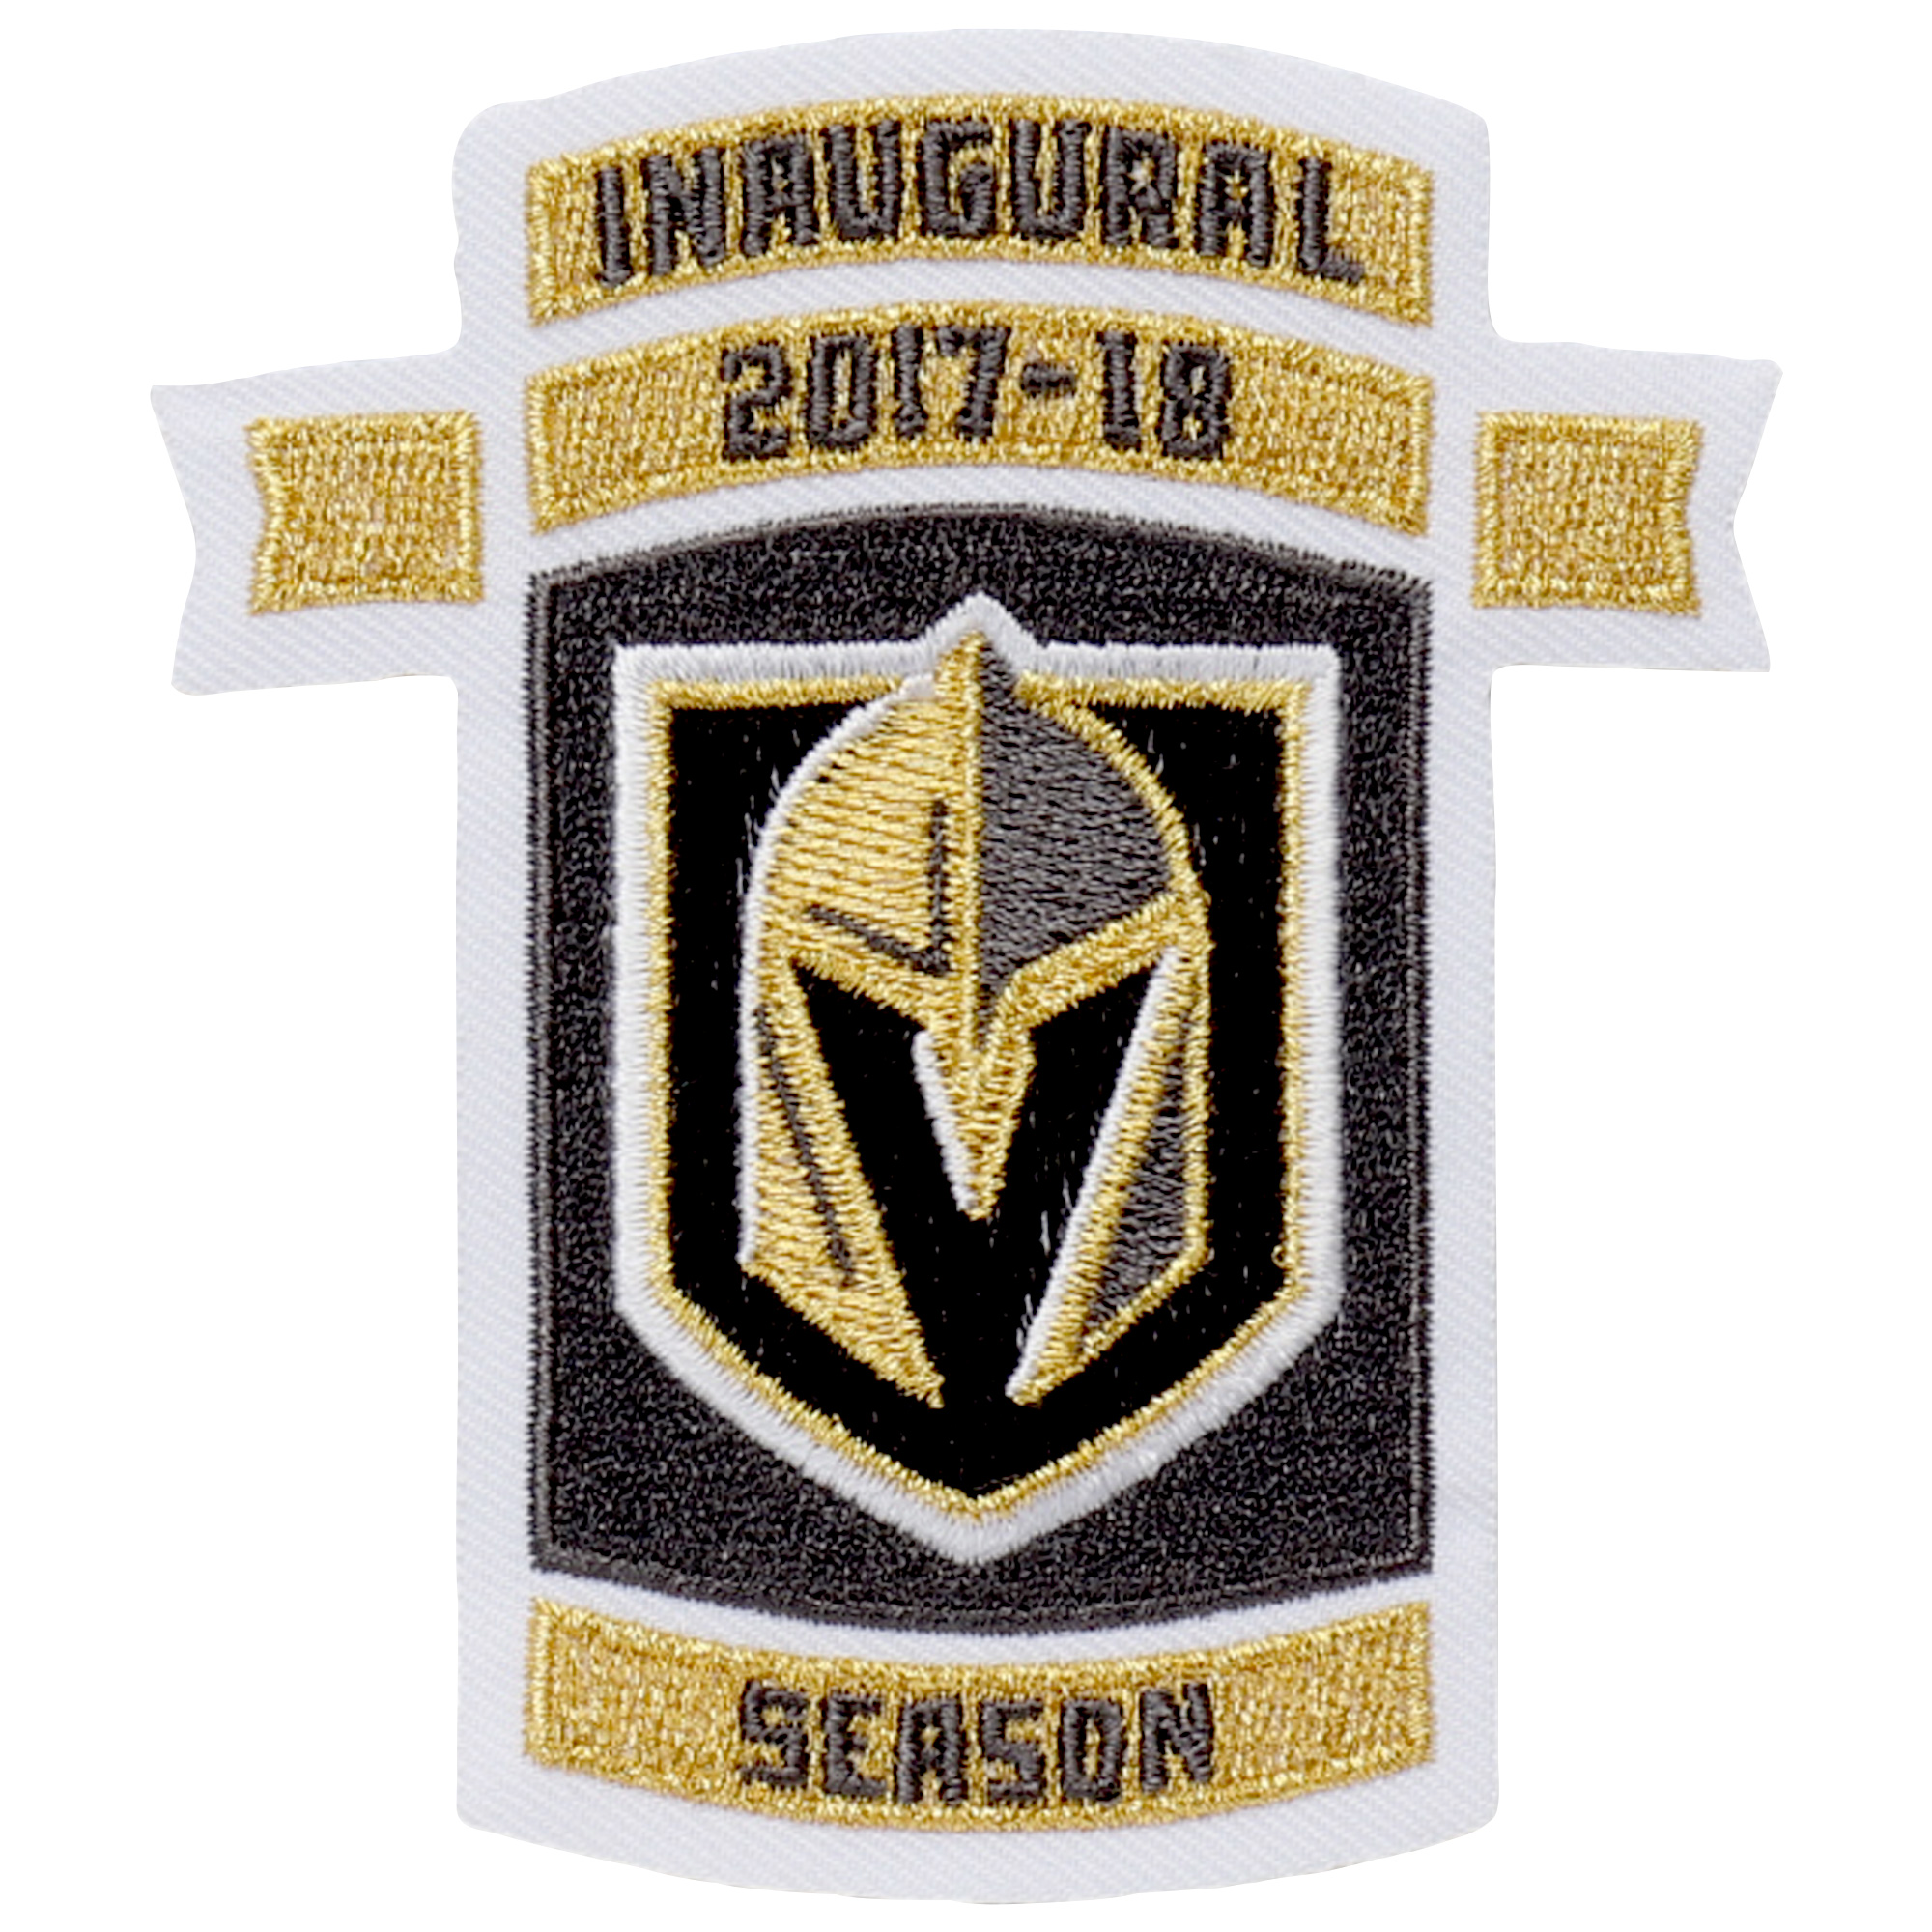 Vegas Golden Knights 1st Year Logo Patch - No Size